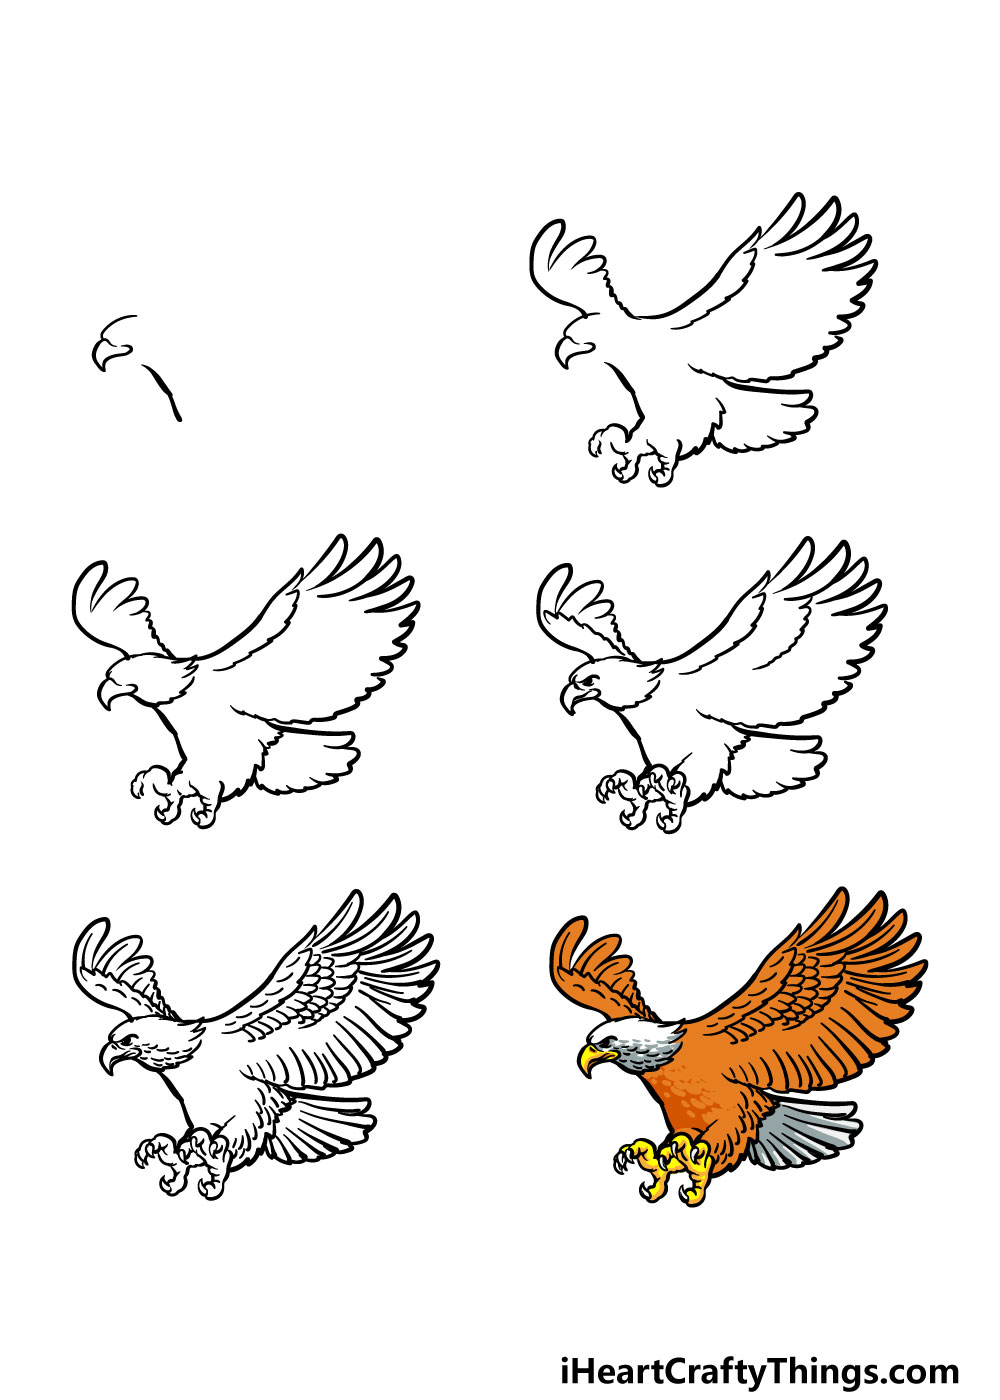 how to draw a bald eagle in 6 steps